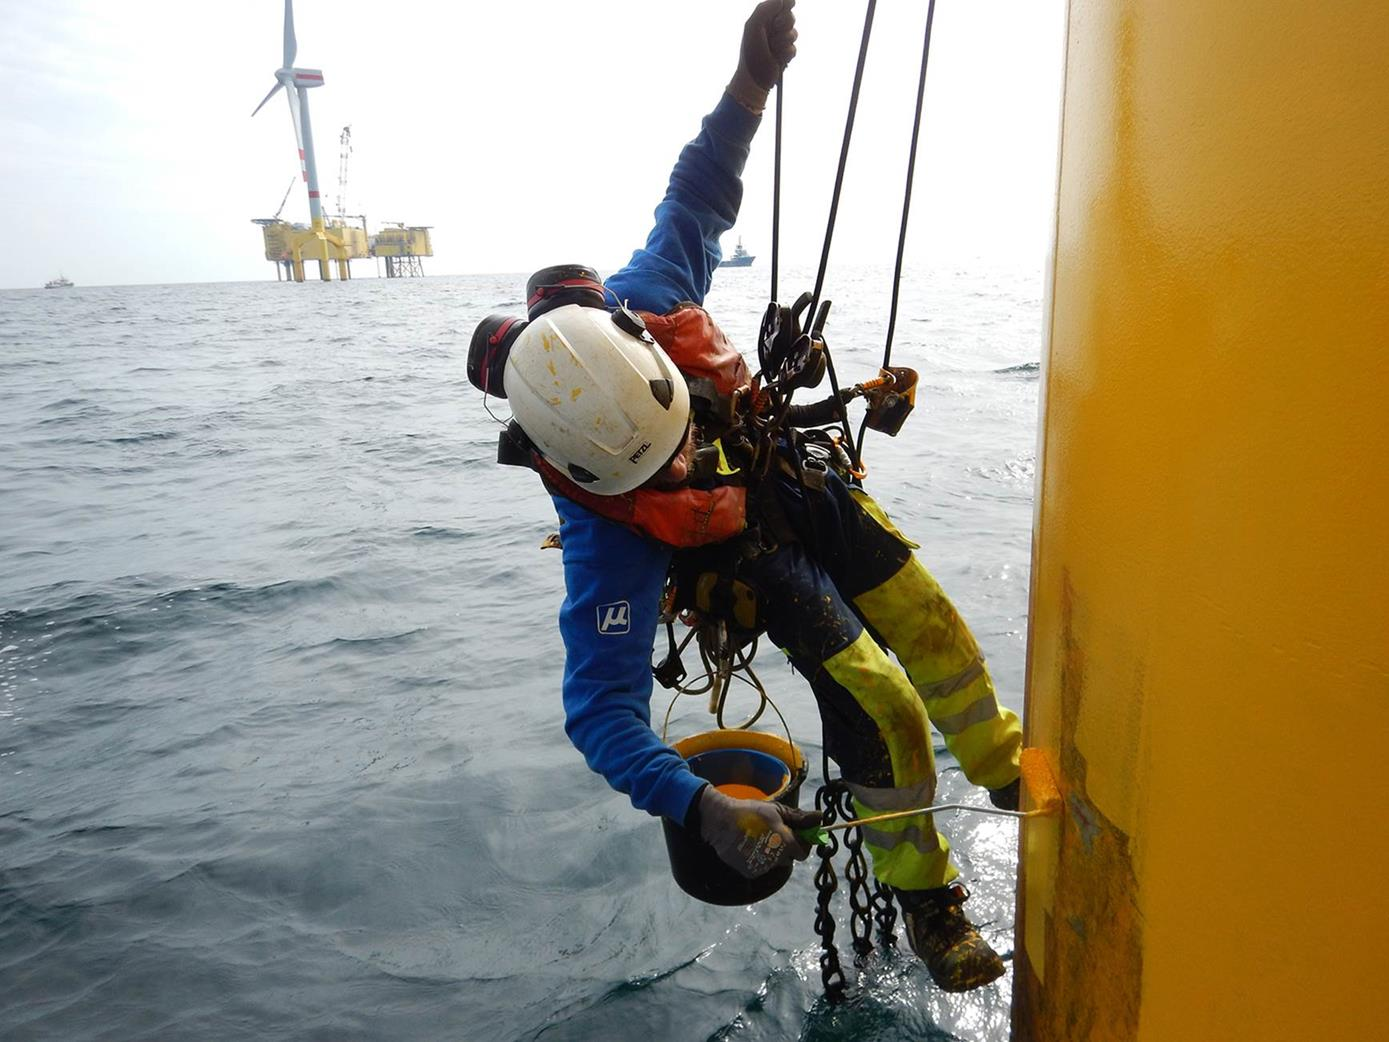 Muehlhan Targets Offshore Wind With New Service Unit